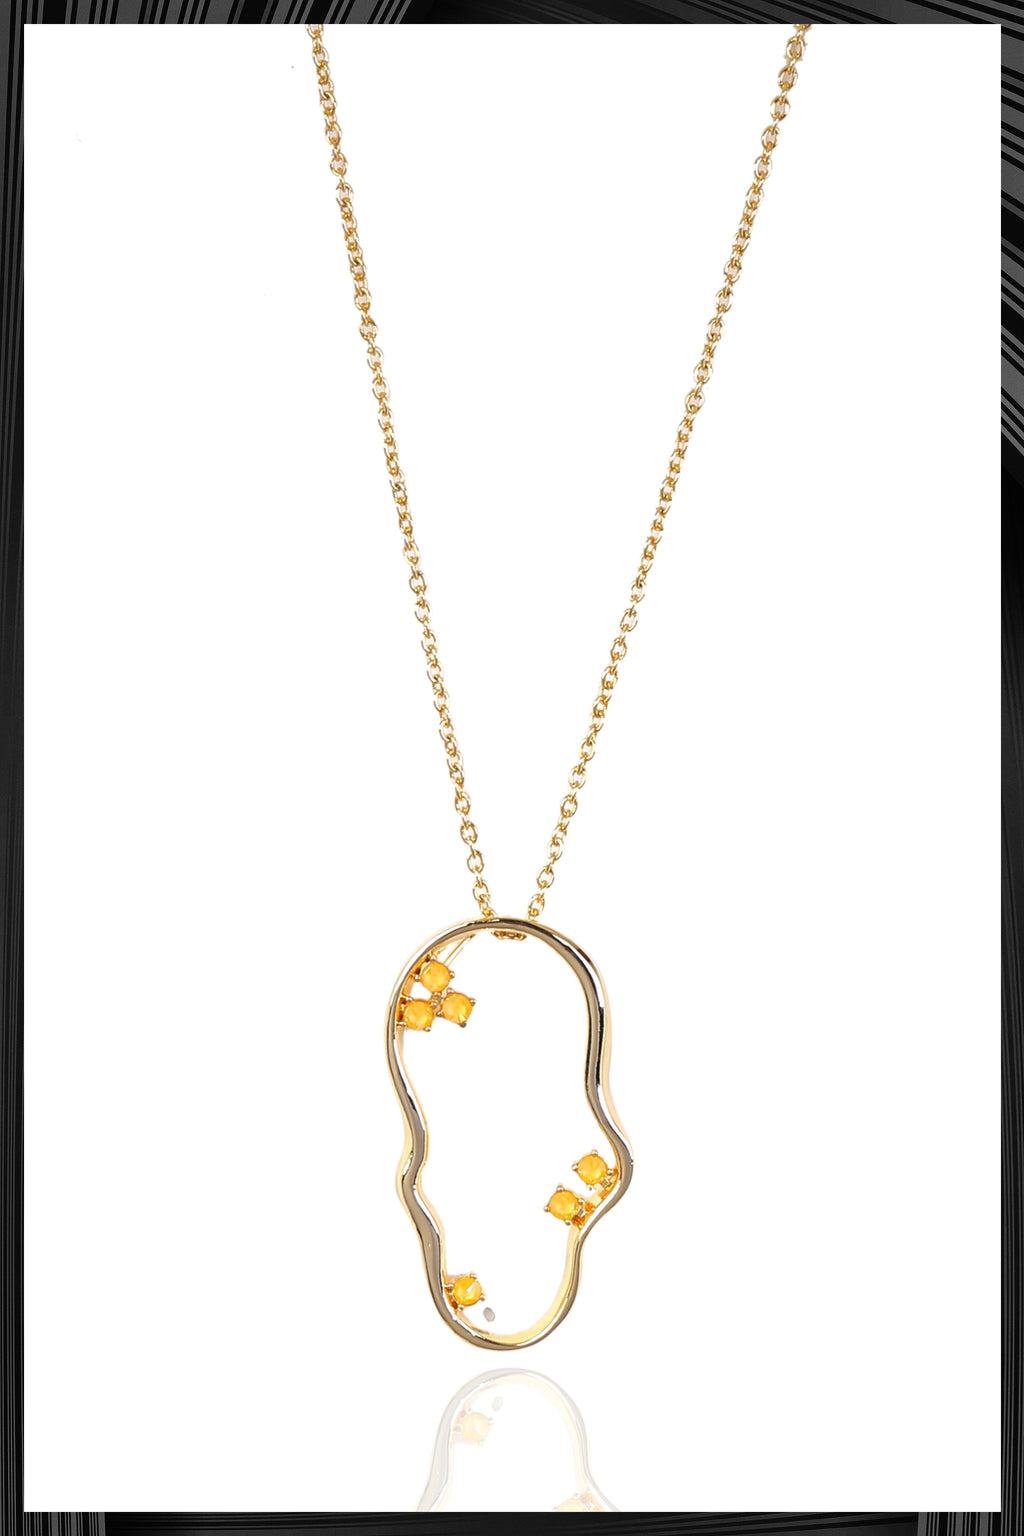 Marigold Loire Pendant Necklace | Free Delivery - Quick Shipping